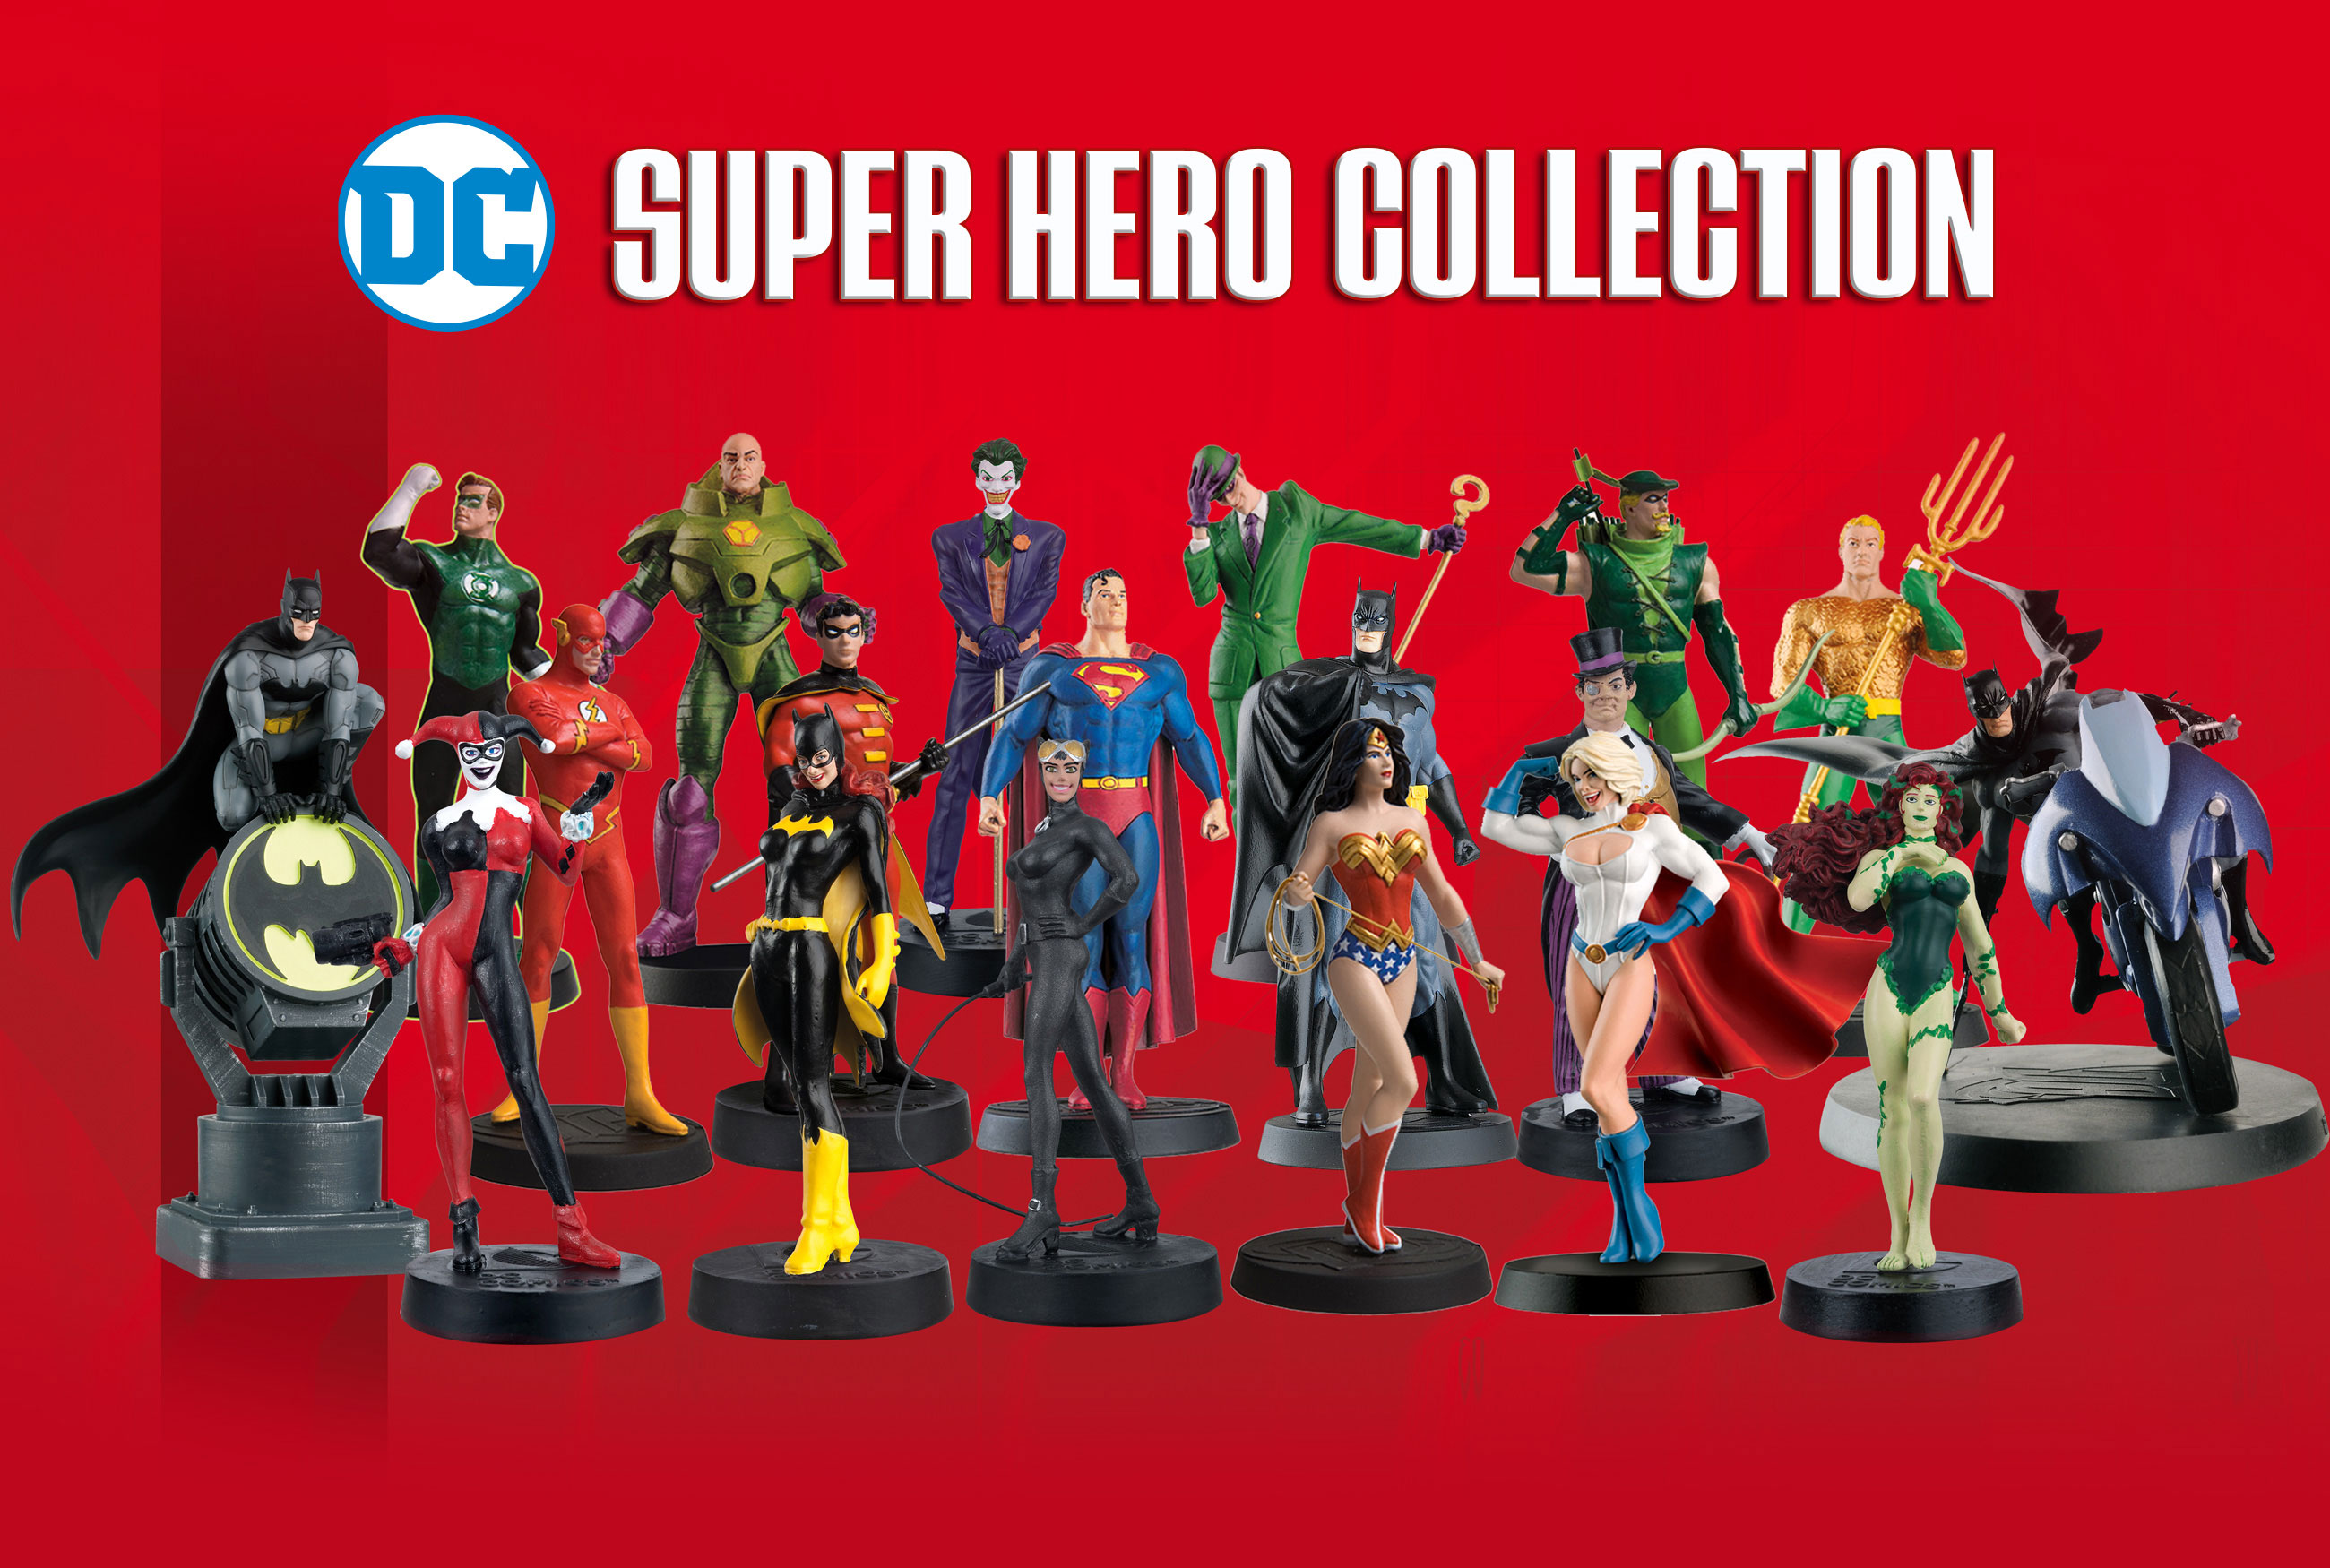 DC Superhero figurines